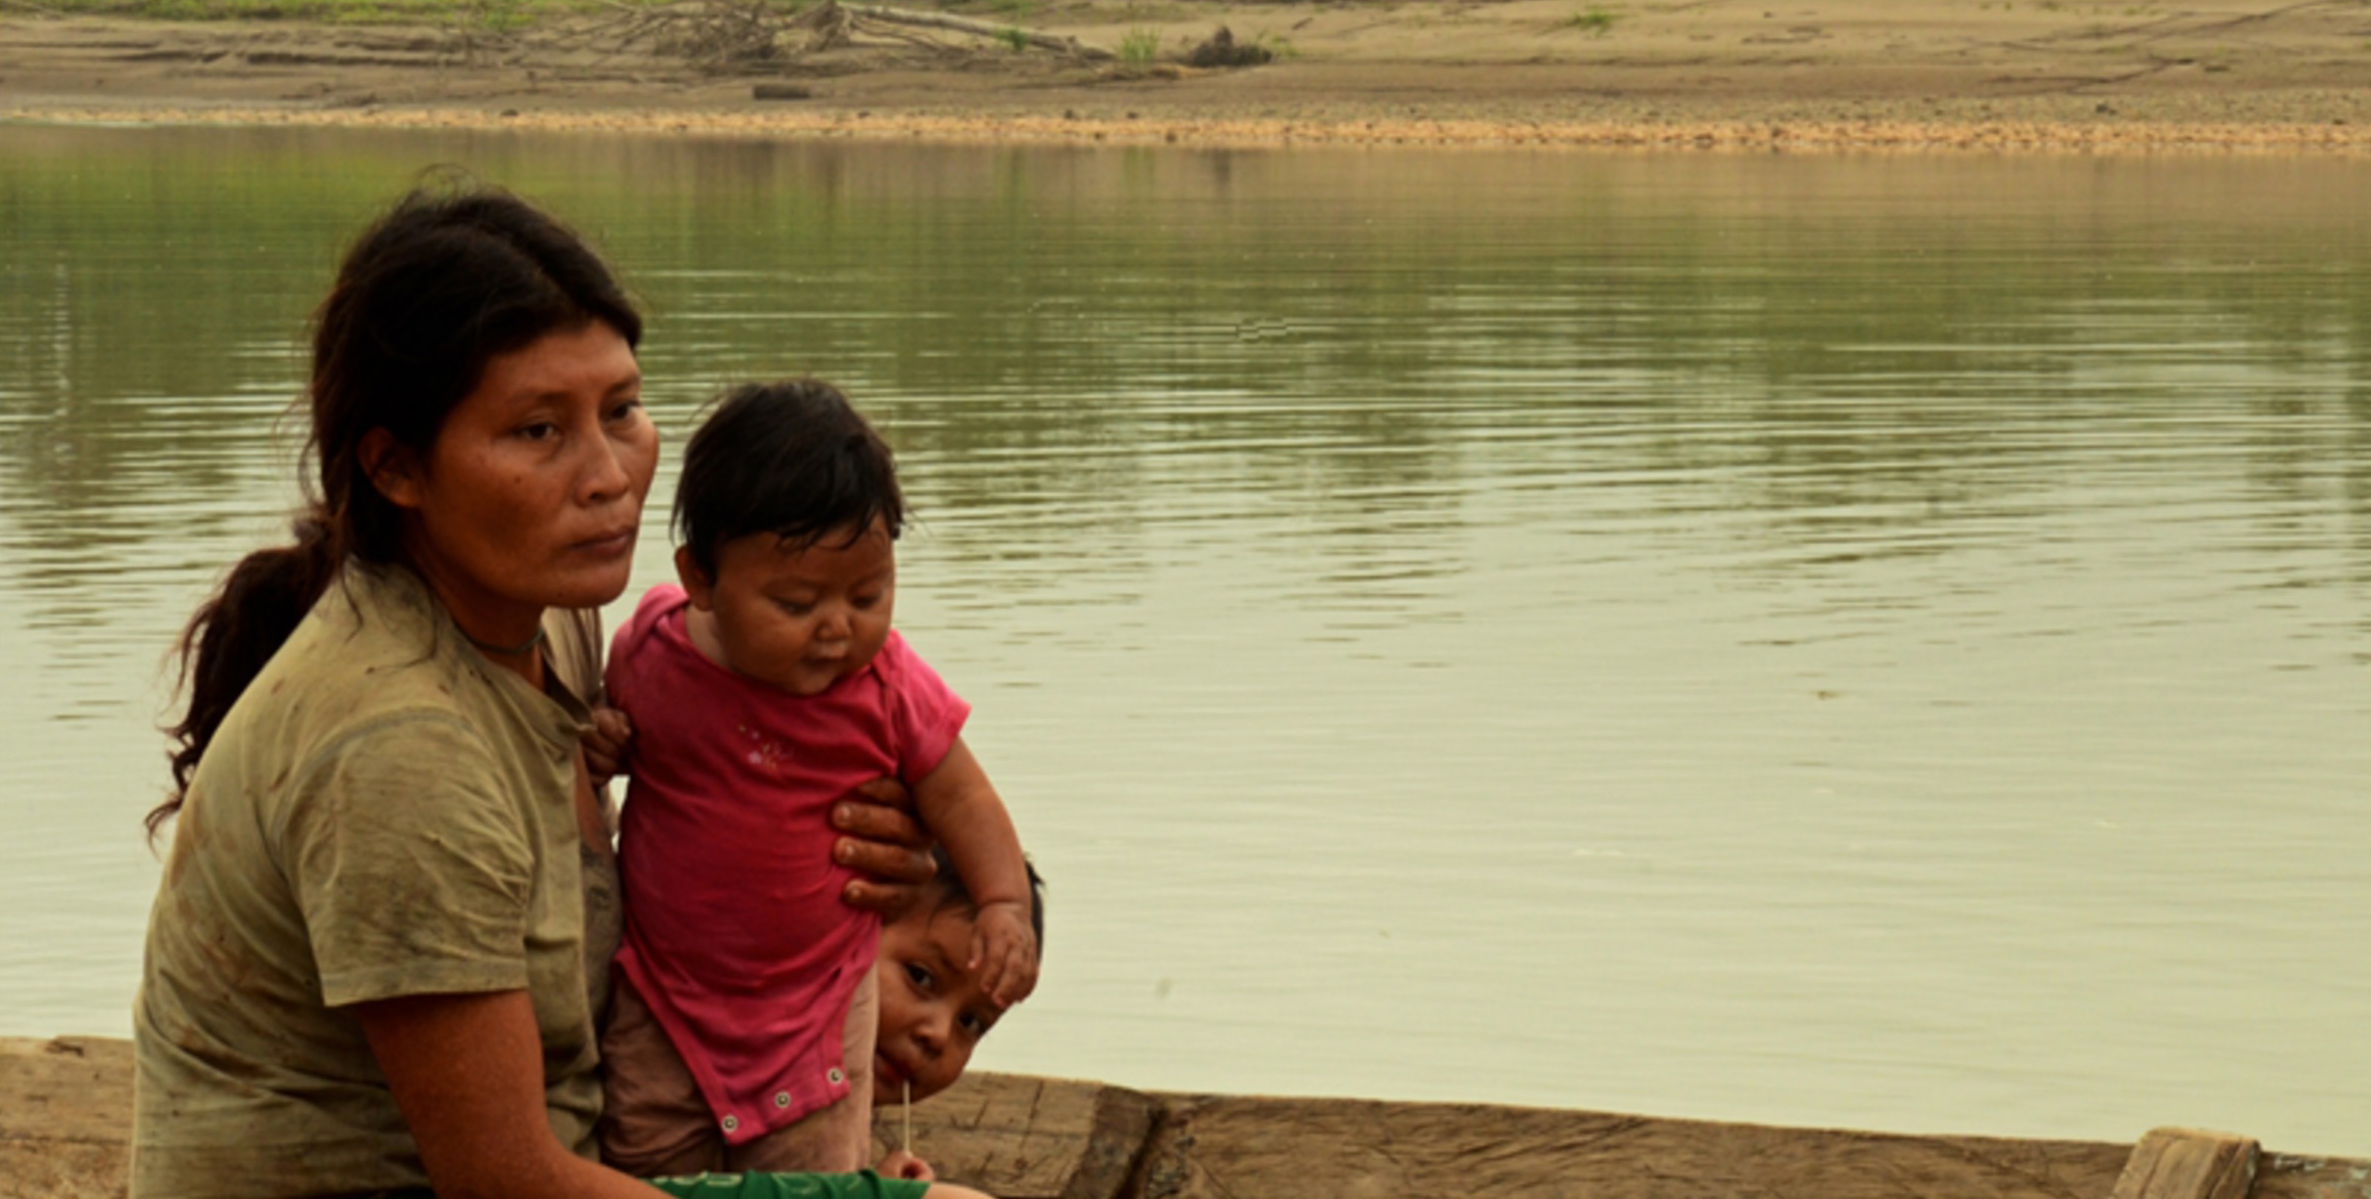 Tsimane woman and her children on the Beni River at the banks of the community of Torewa. Photo by Eduardo Franco